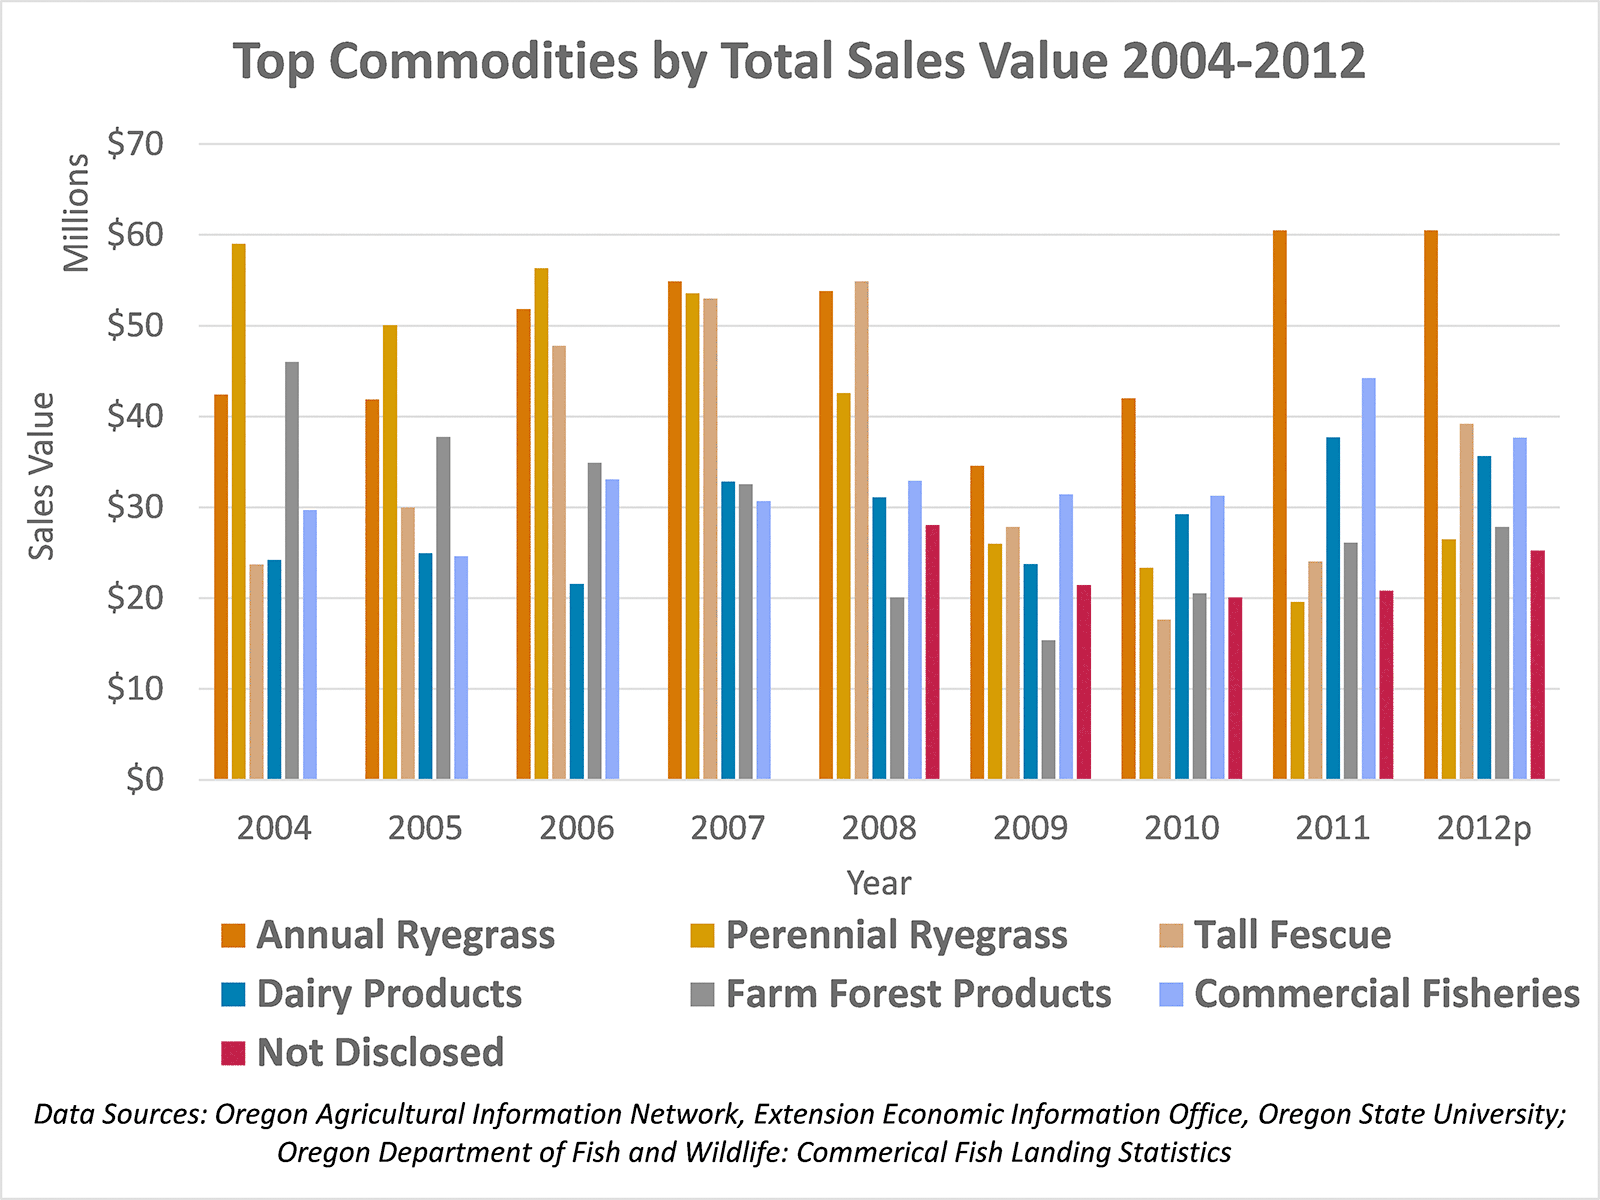 Top Commodities by Total Sales Value